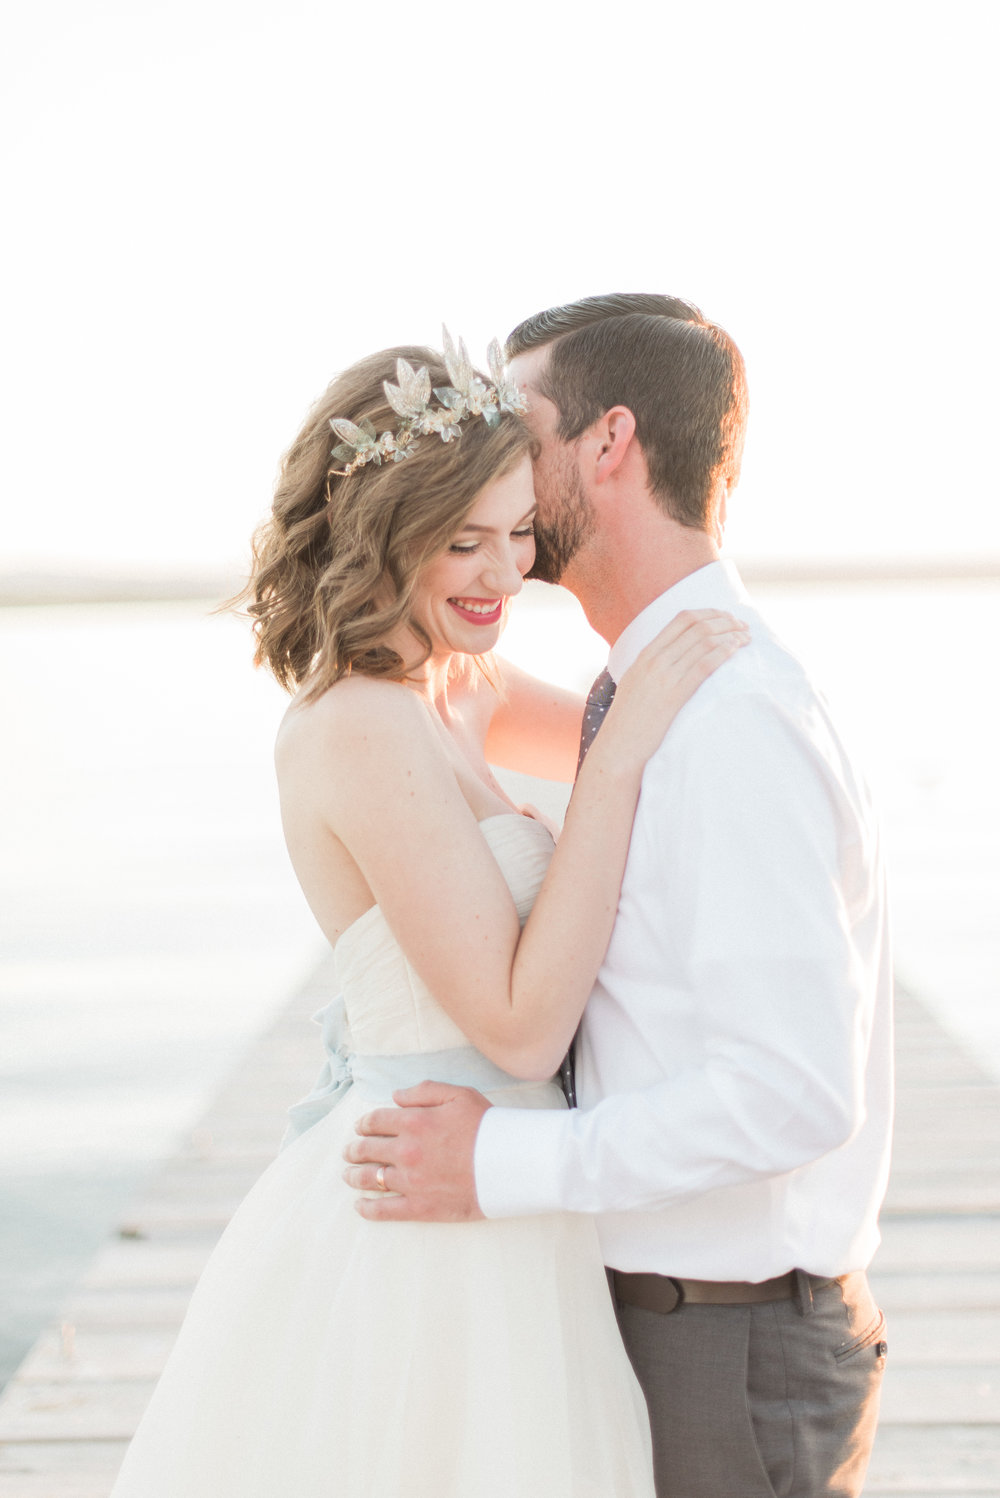 claire + jordan by Stephanie Mballo Photography